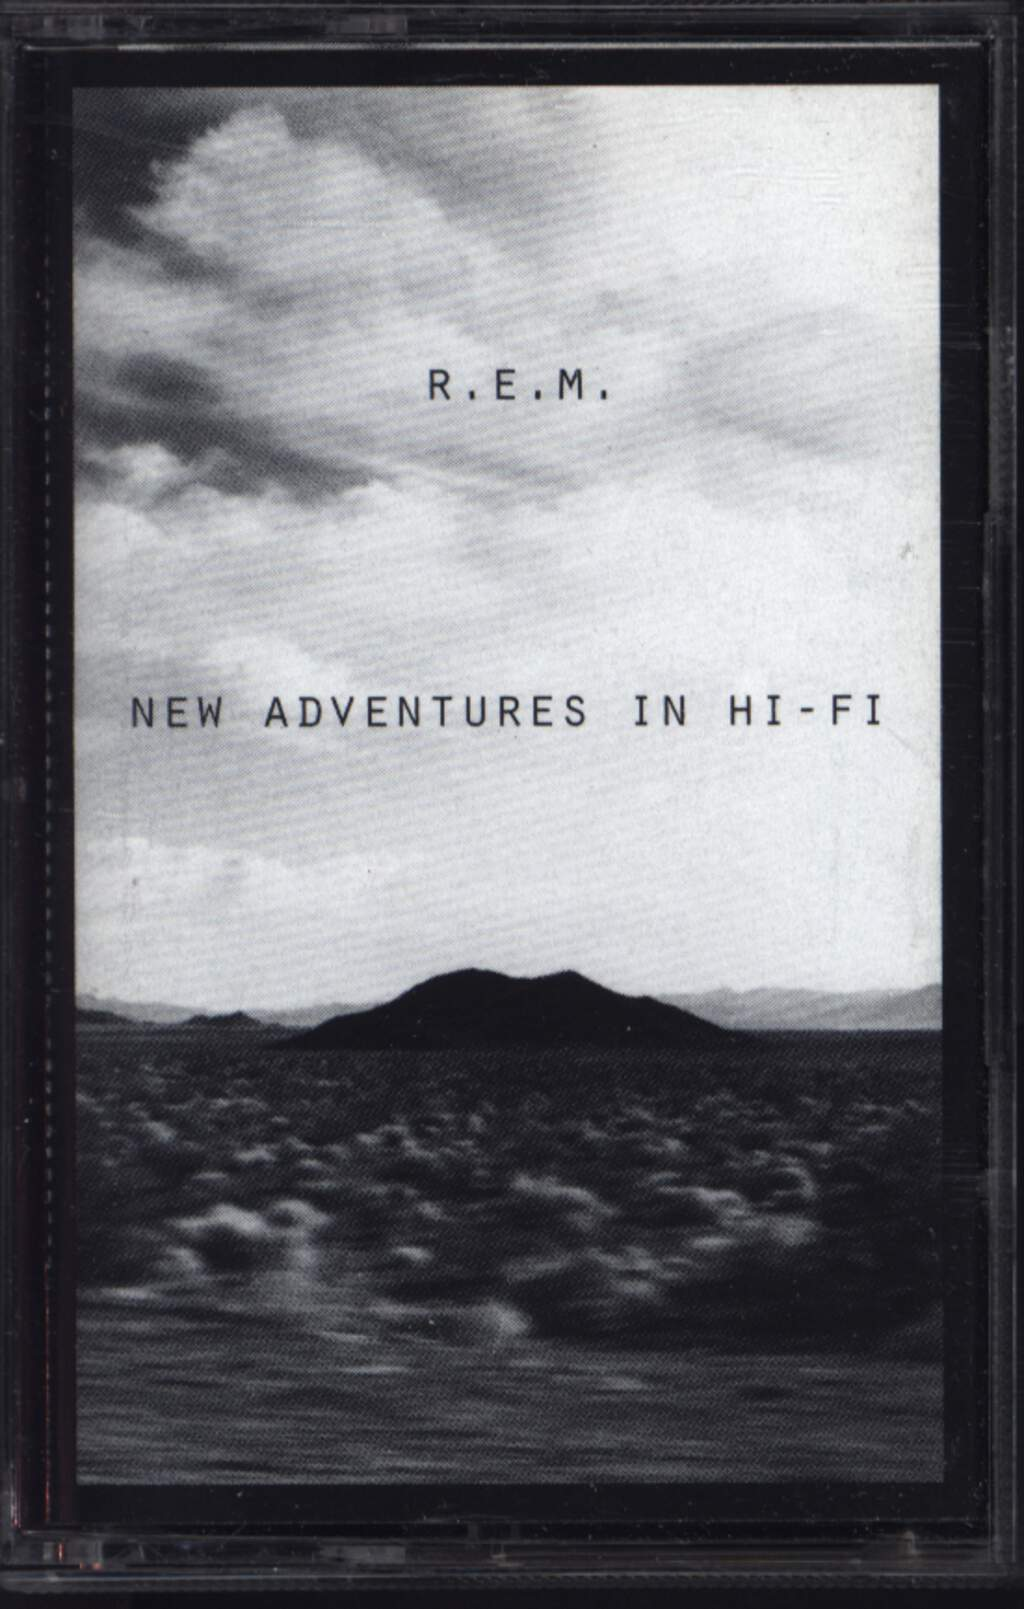 R.E.M.: New Adventures In Hi-Fi, Compact Cassette